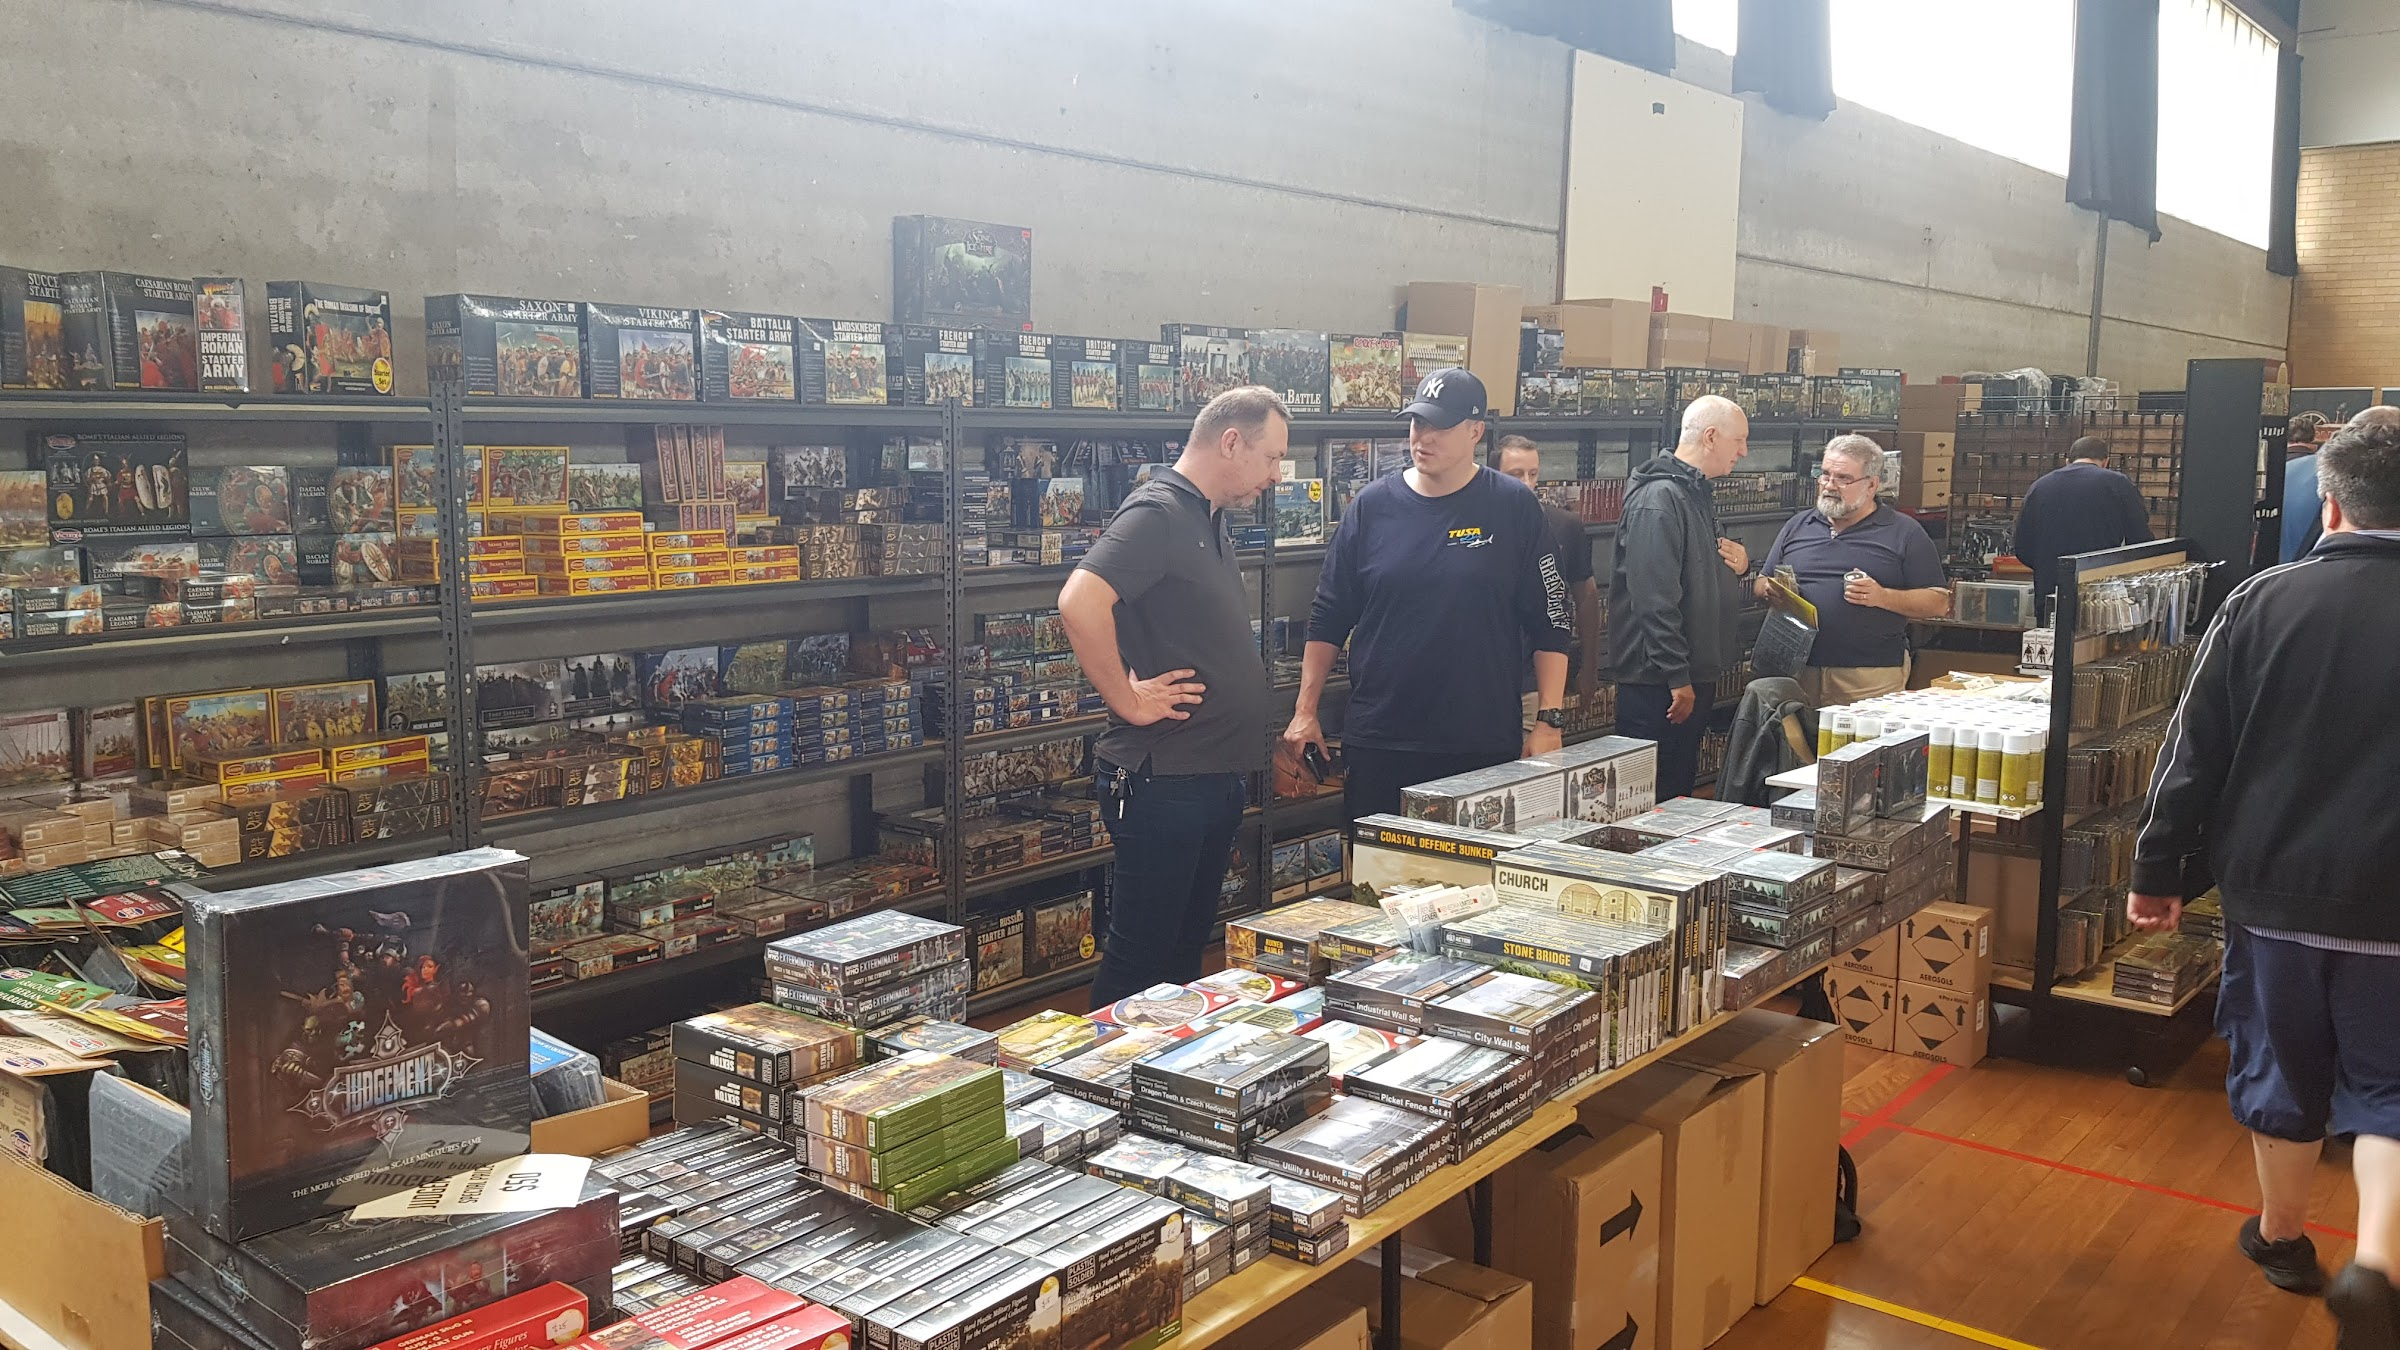 Our good friend Ian Crabb (left) from War & Peace Games talking with customers